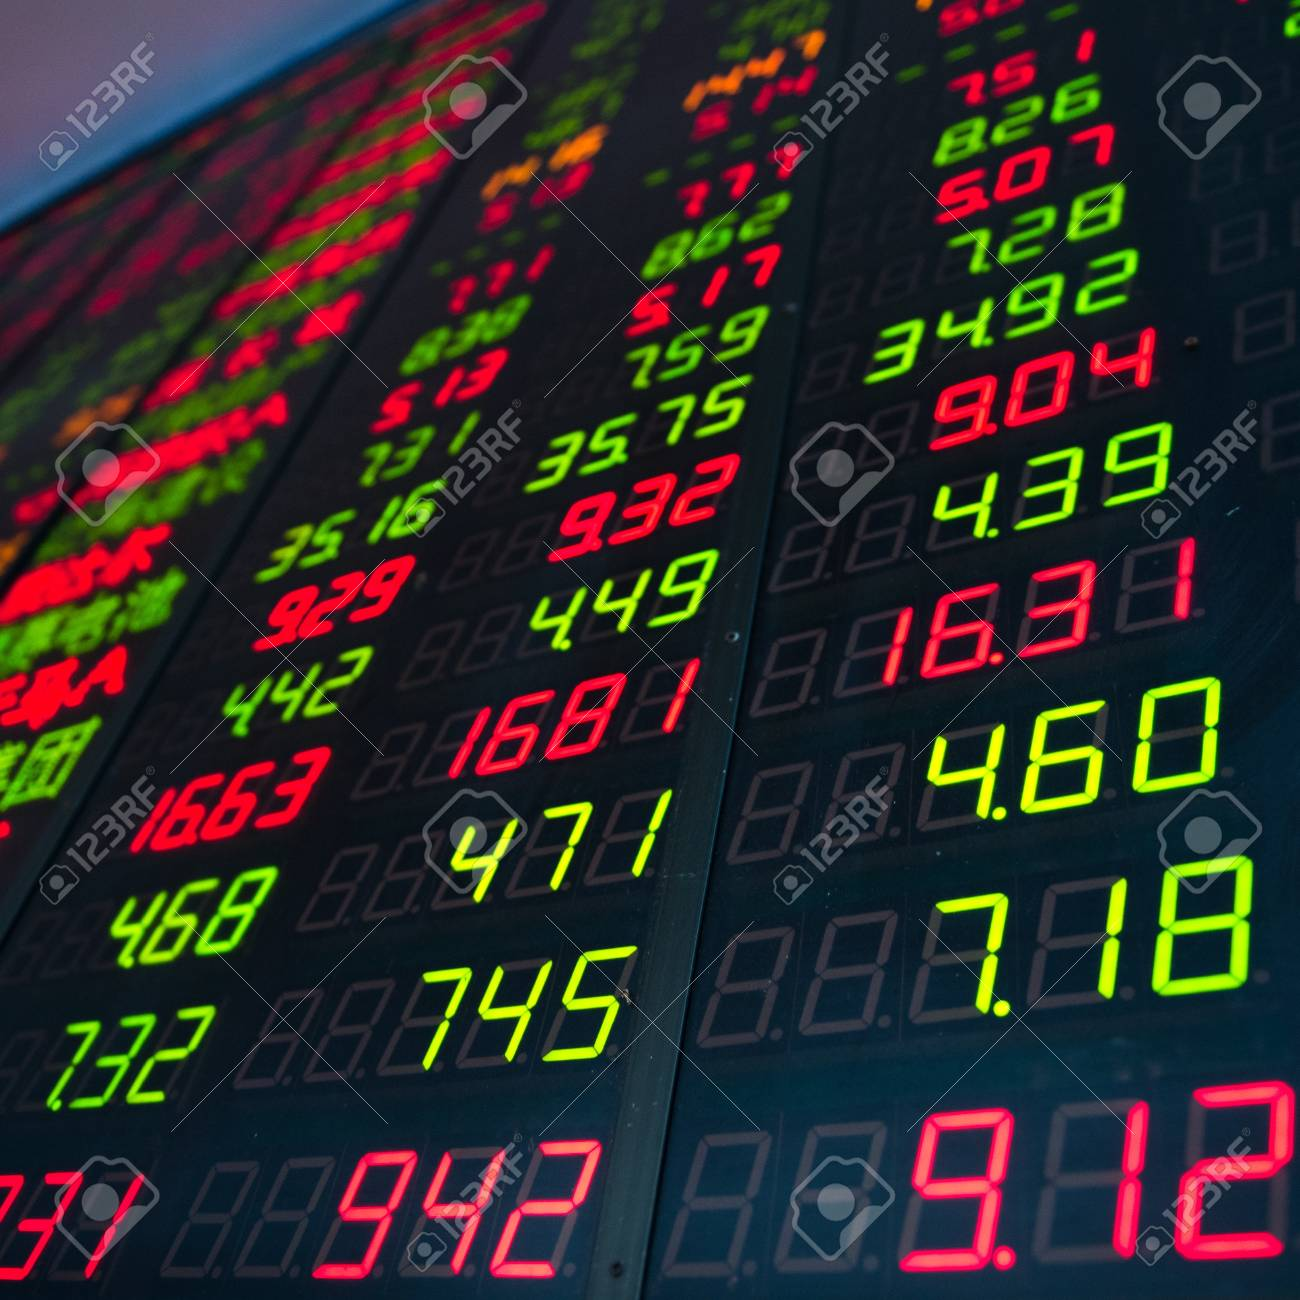 Display of Stock market quotes in China. Stock Photo - 20228854